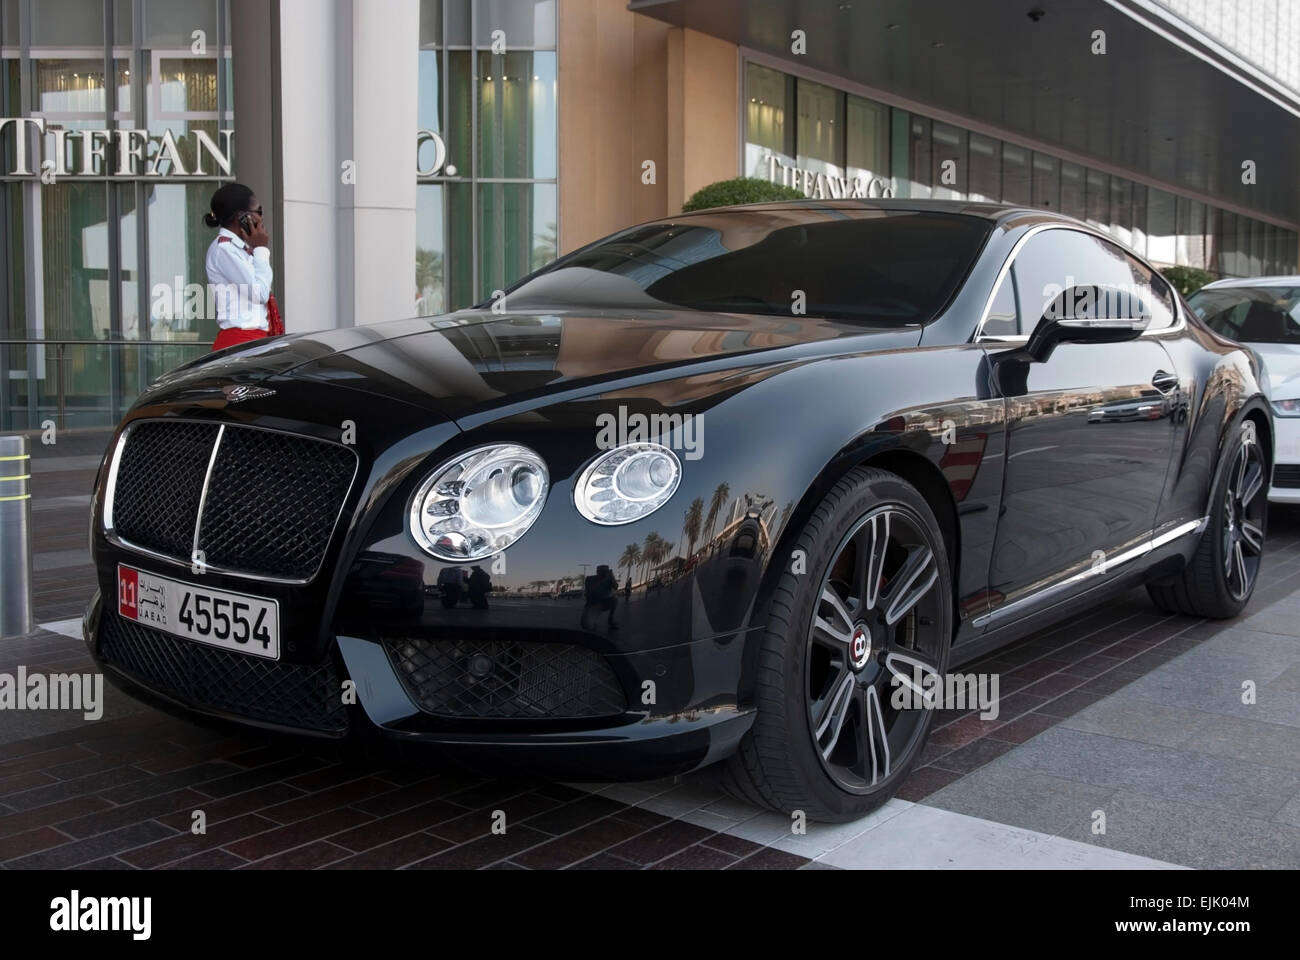 Black Shiny Sports Car High Resolution Stock Photography And Images Alamy